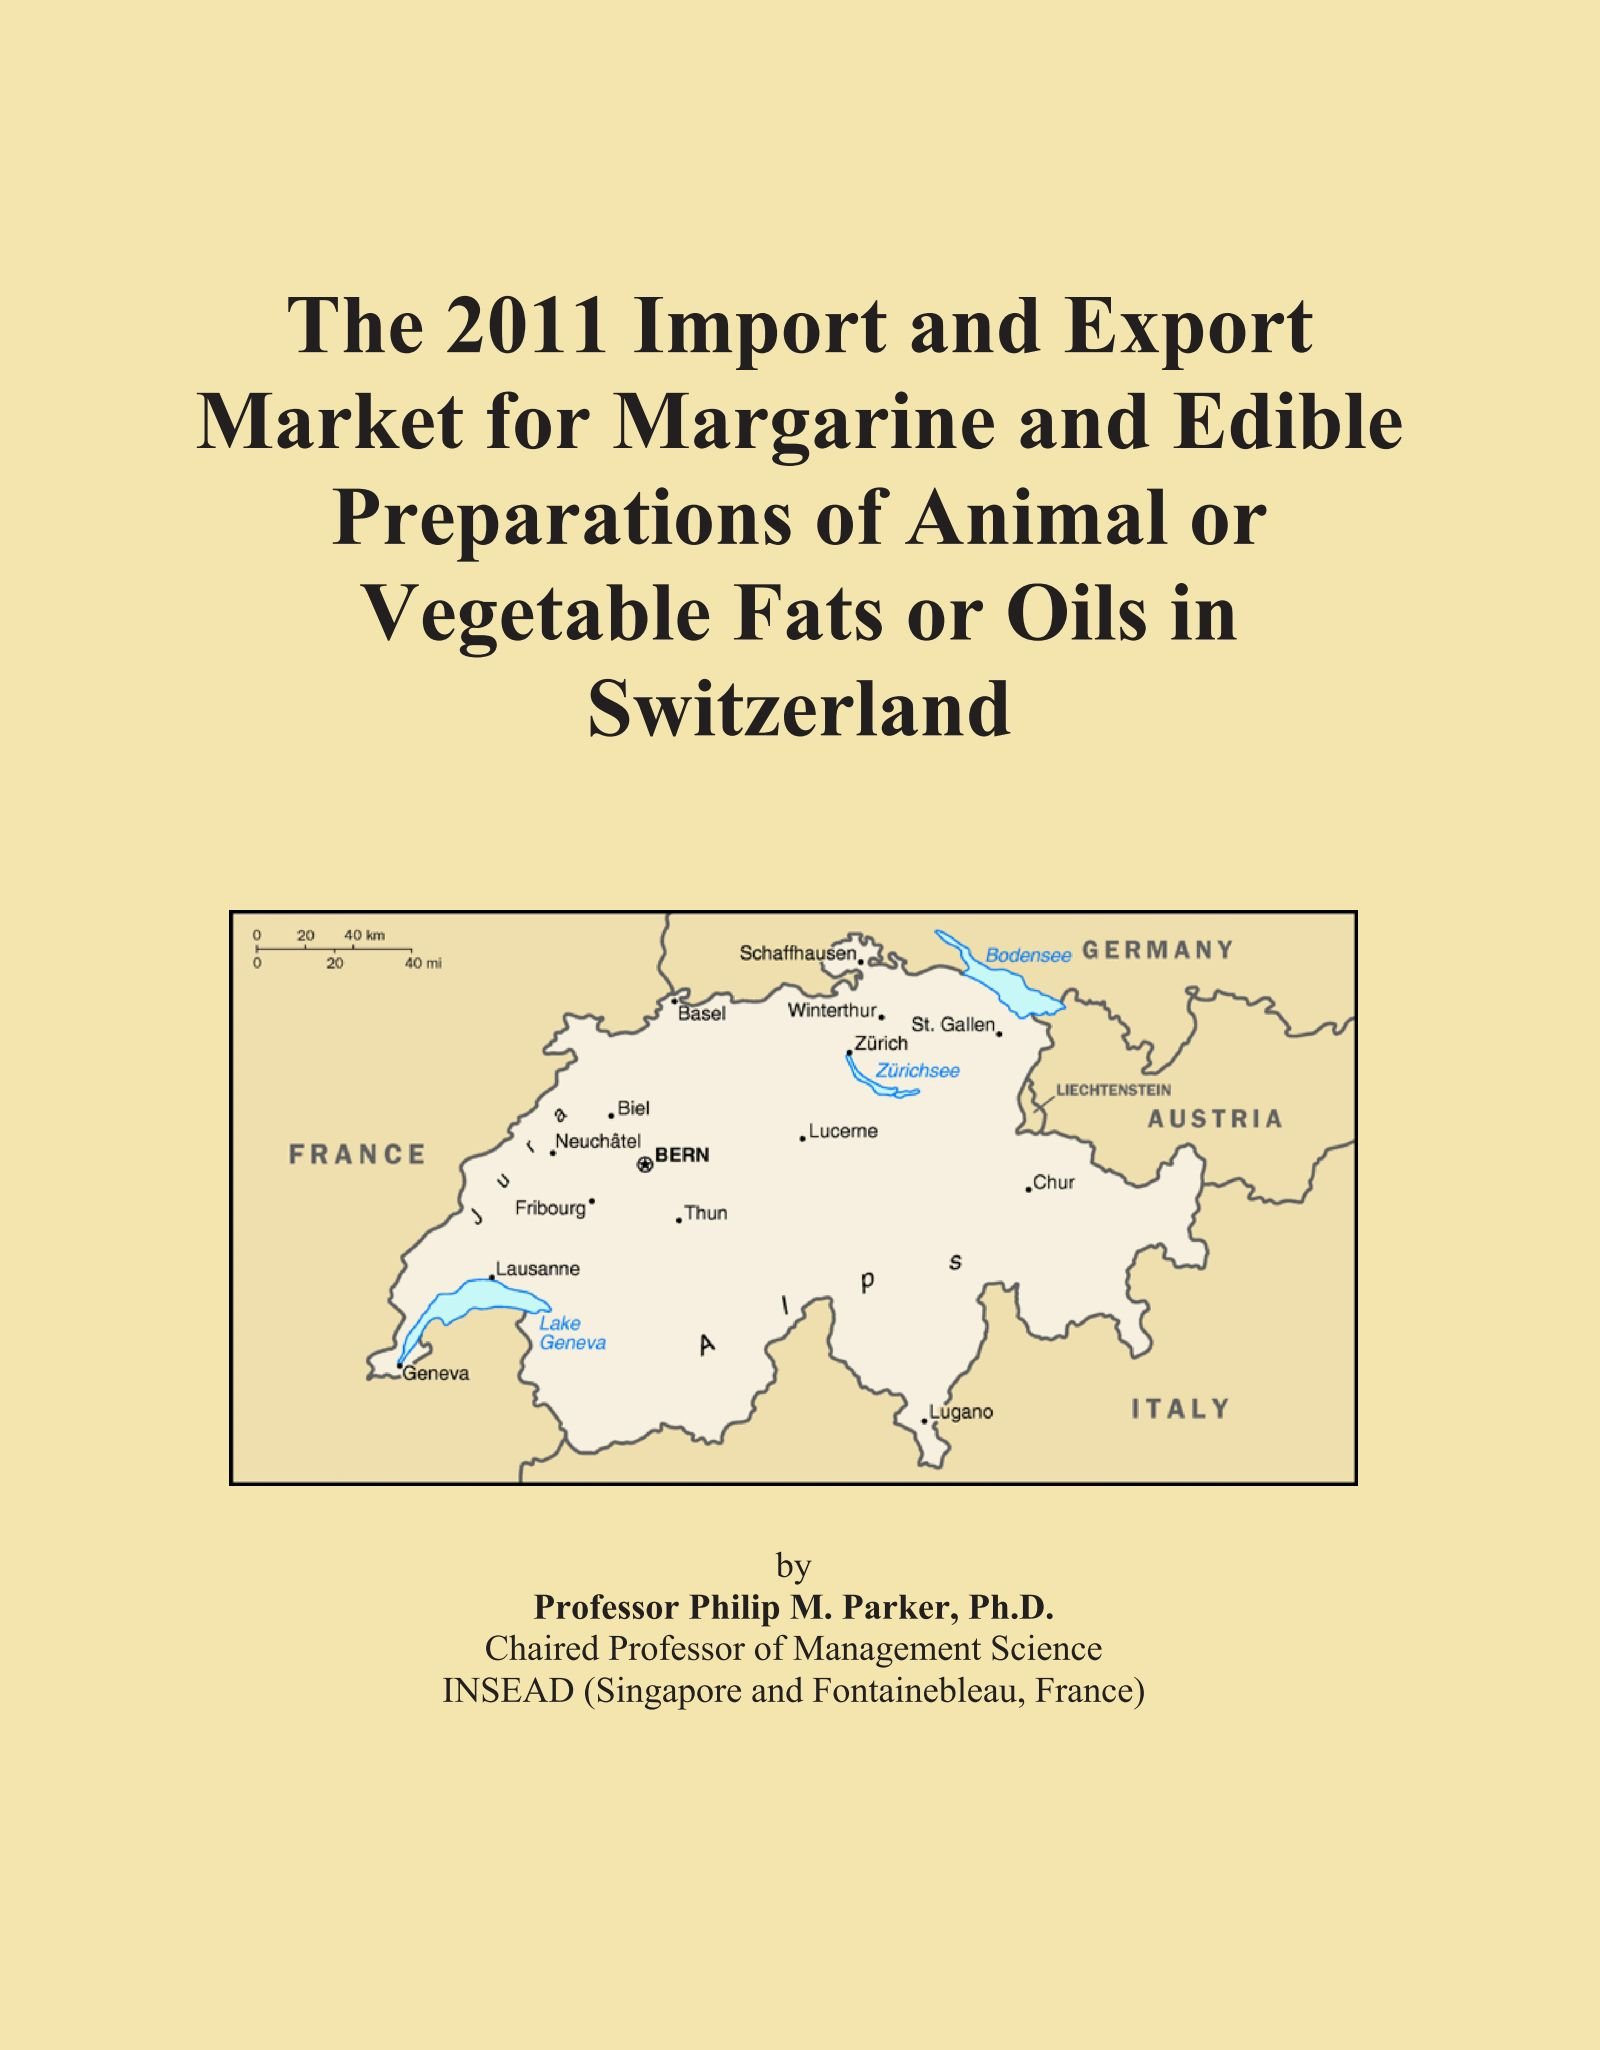 The 2011 Import and Export Market for Margarine and Edible Preparations of Animal or Vegetable Fats or Oils in Switzerland PDF